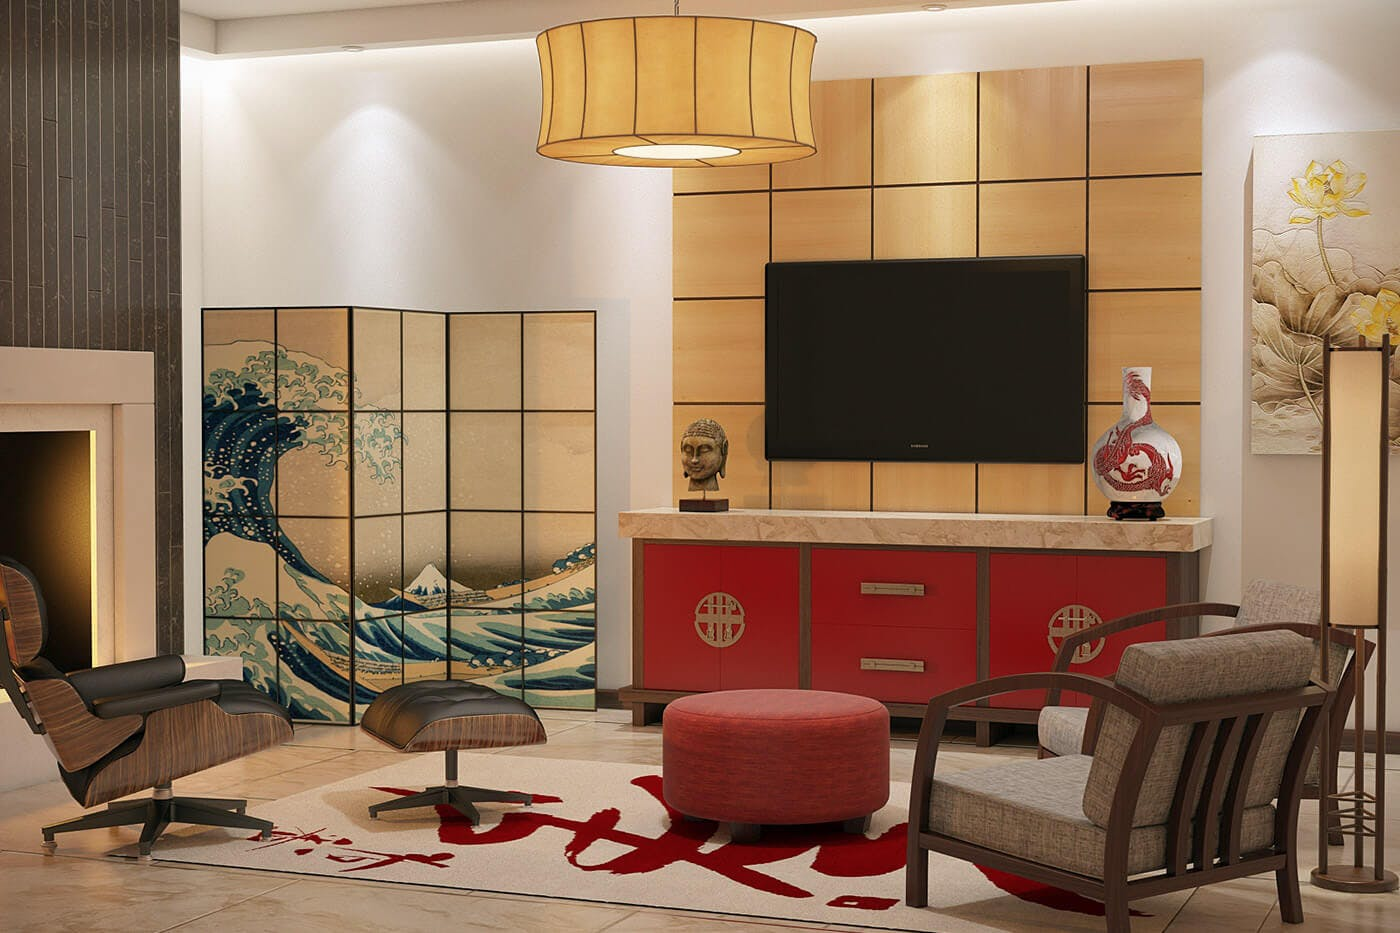 red asian style base cabinet with flaoted tv above. tanzu hardware, mixed wood frame and yellow gold marble counter top.